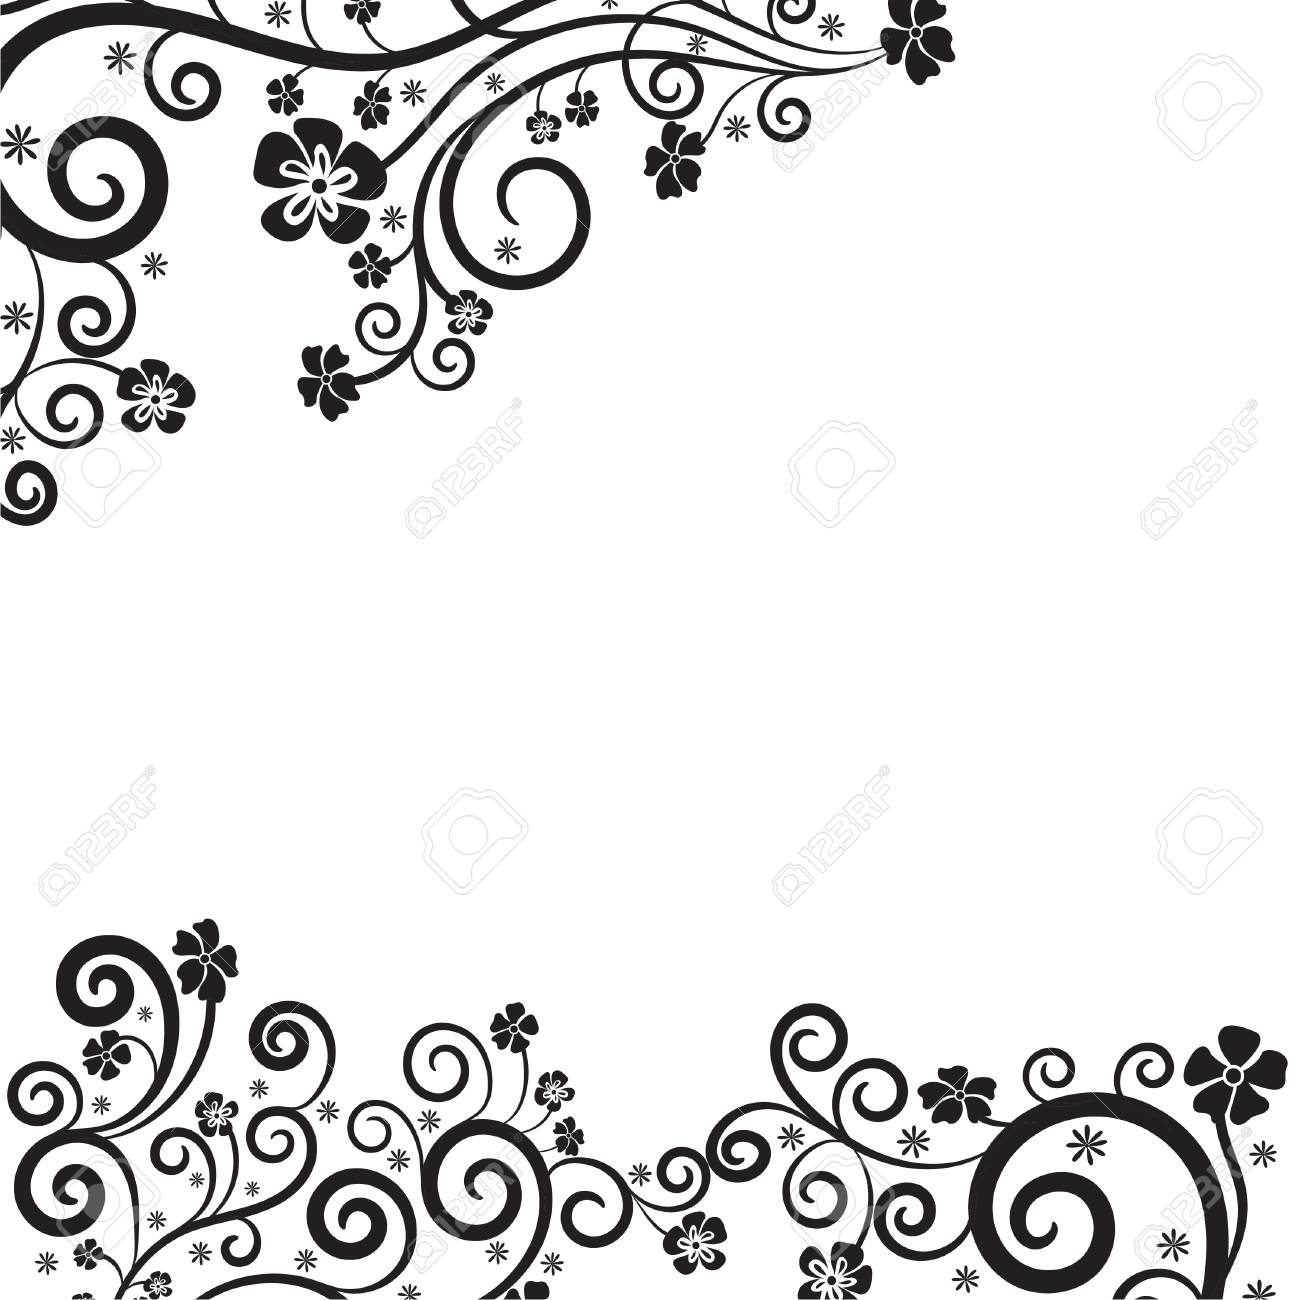 vintage floral decorative background with calligraphic swirls